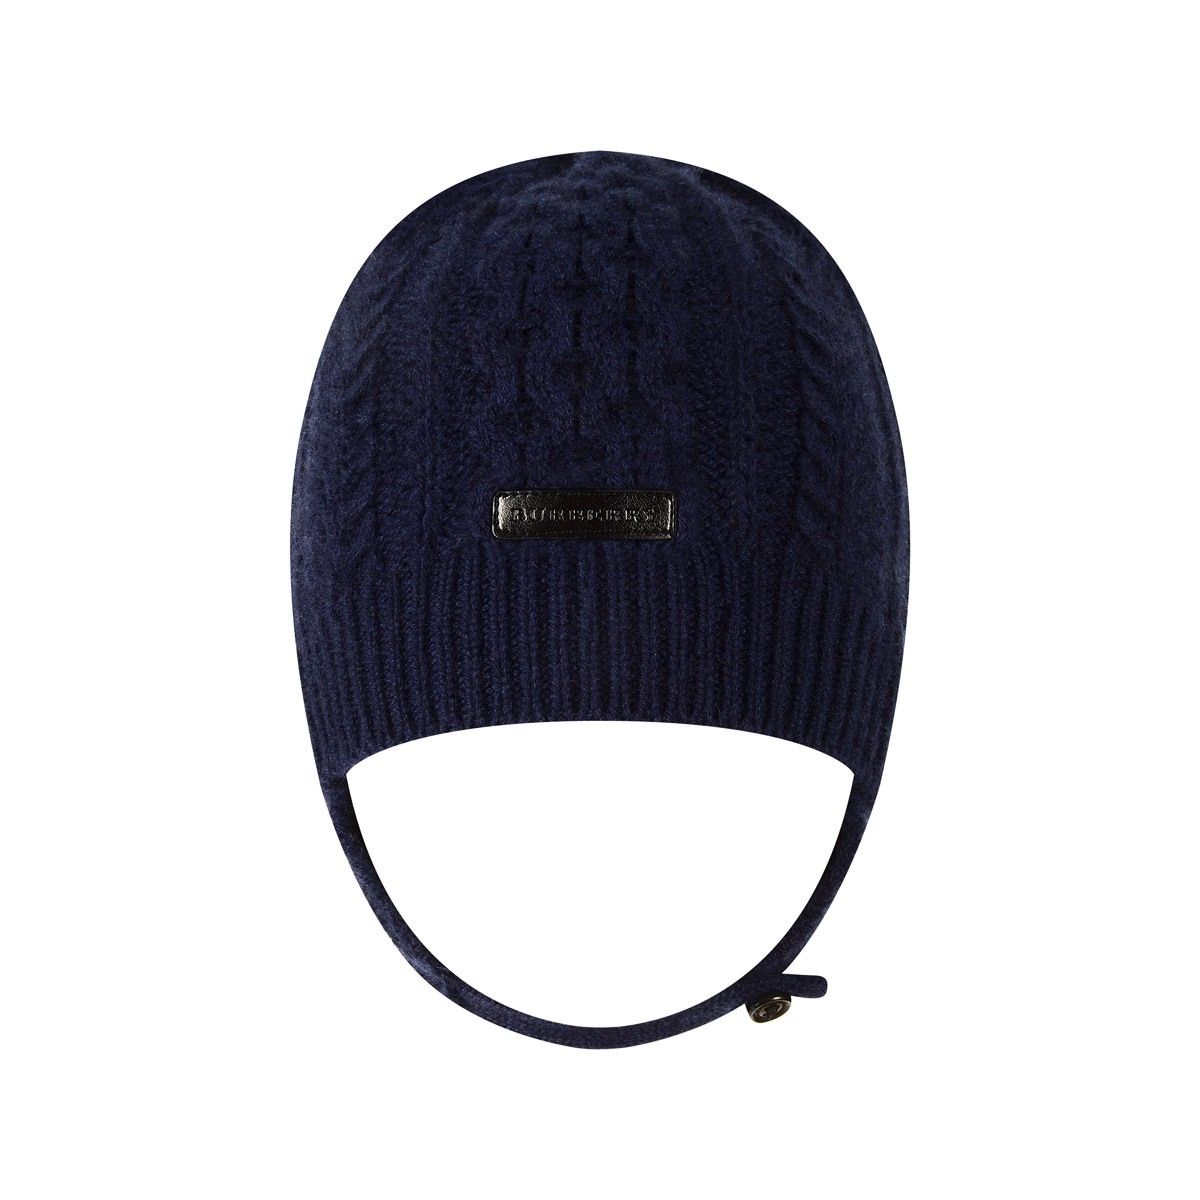 adcb1532faf Burberry Baby Boys Navy Cashmere Cable Knit Hat